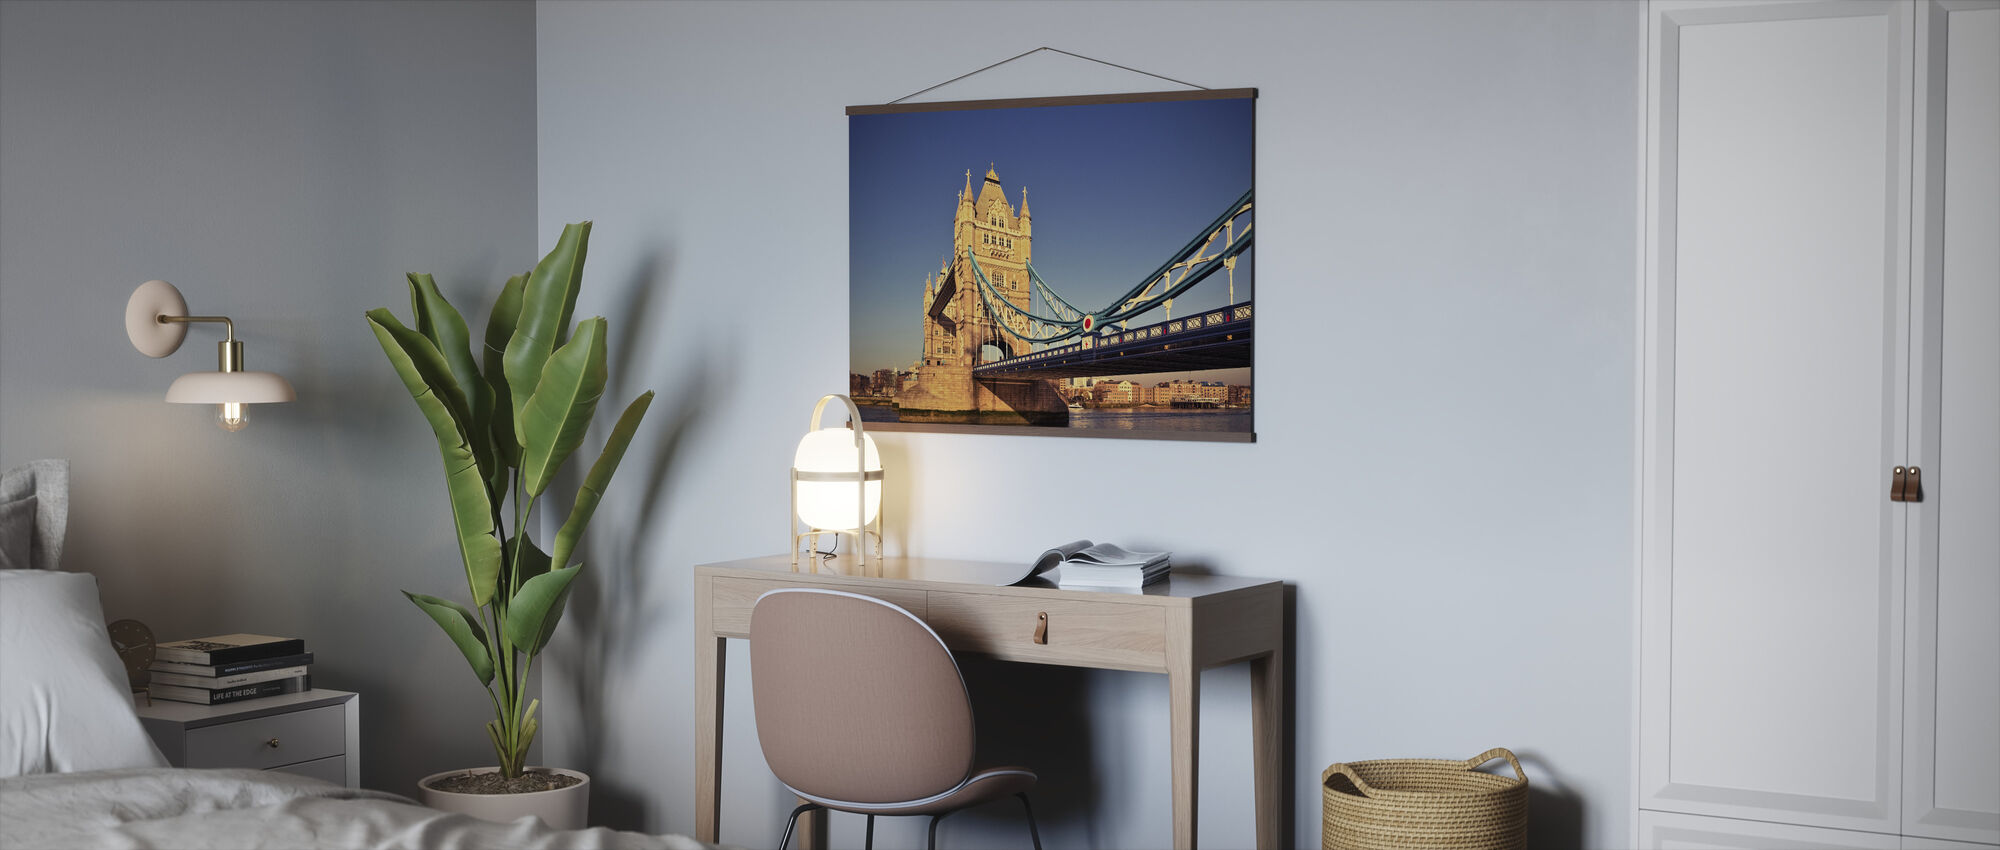 Tower Bridge Sunshine - Juliste - Toimisto